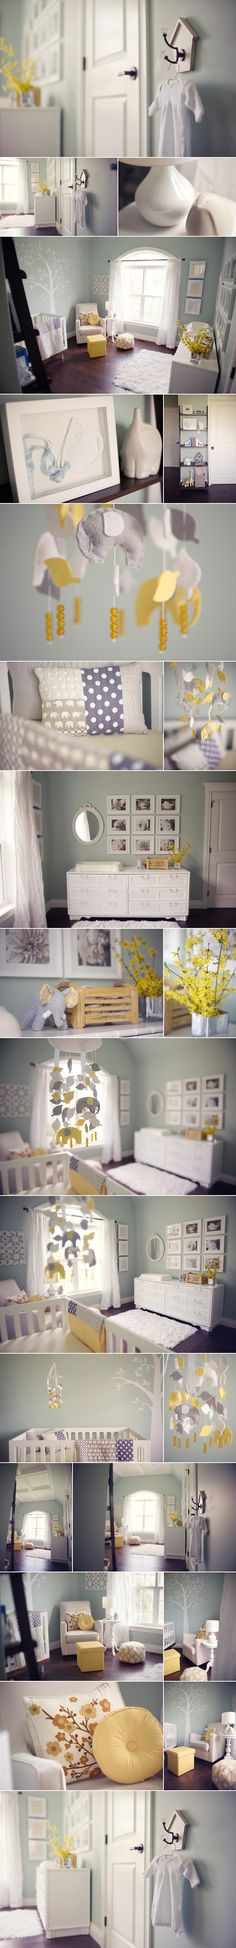 wall color-benjamin moor 'blue grass' ; curtains - akira collection from bouclair;  glider- monte luca glider in stone;  gray and yellow mobile- aprilderek on etsy